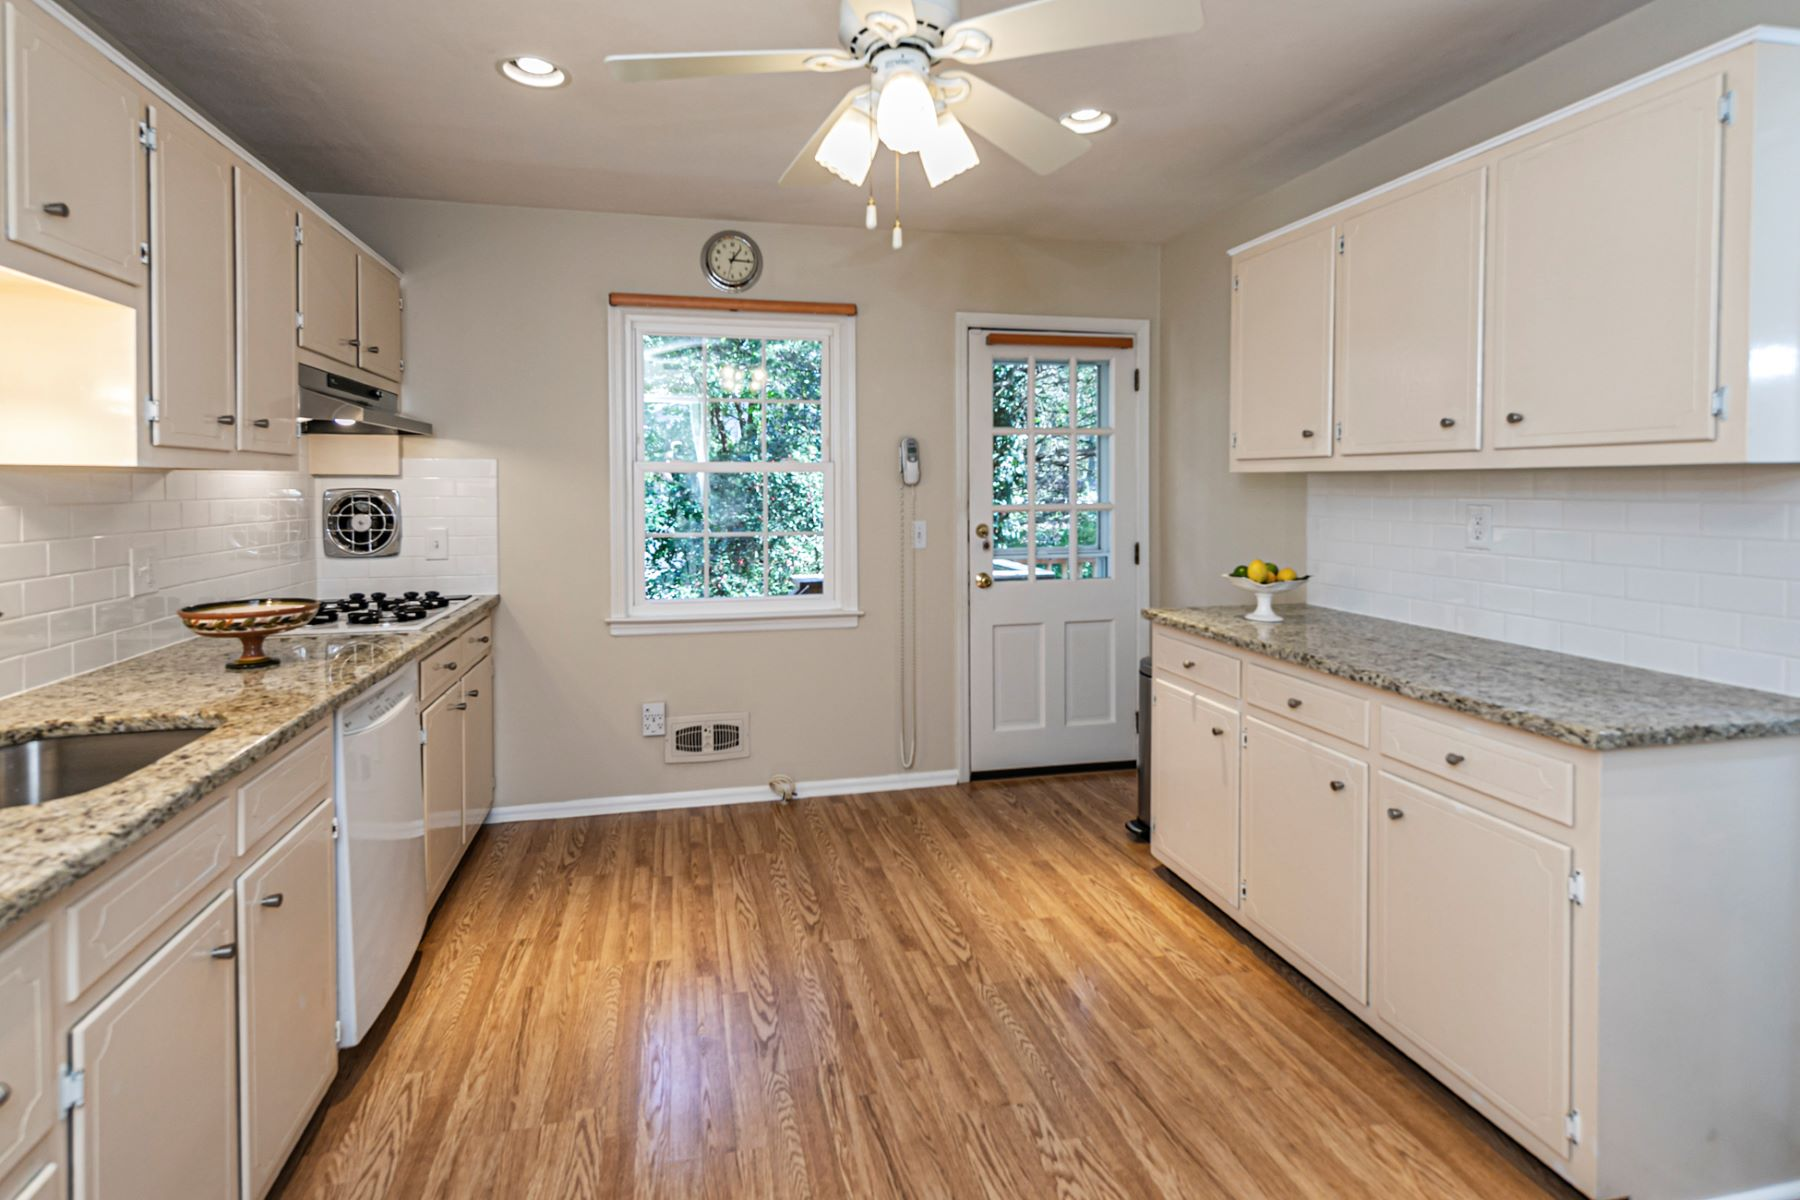 Additional photo for property listing at Natural Light Fills This Beautifully Updated Home 3 Sycamore Lane, Skillman, New Jersey 08558 United States